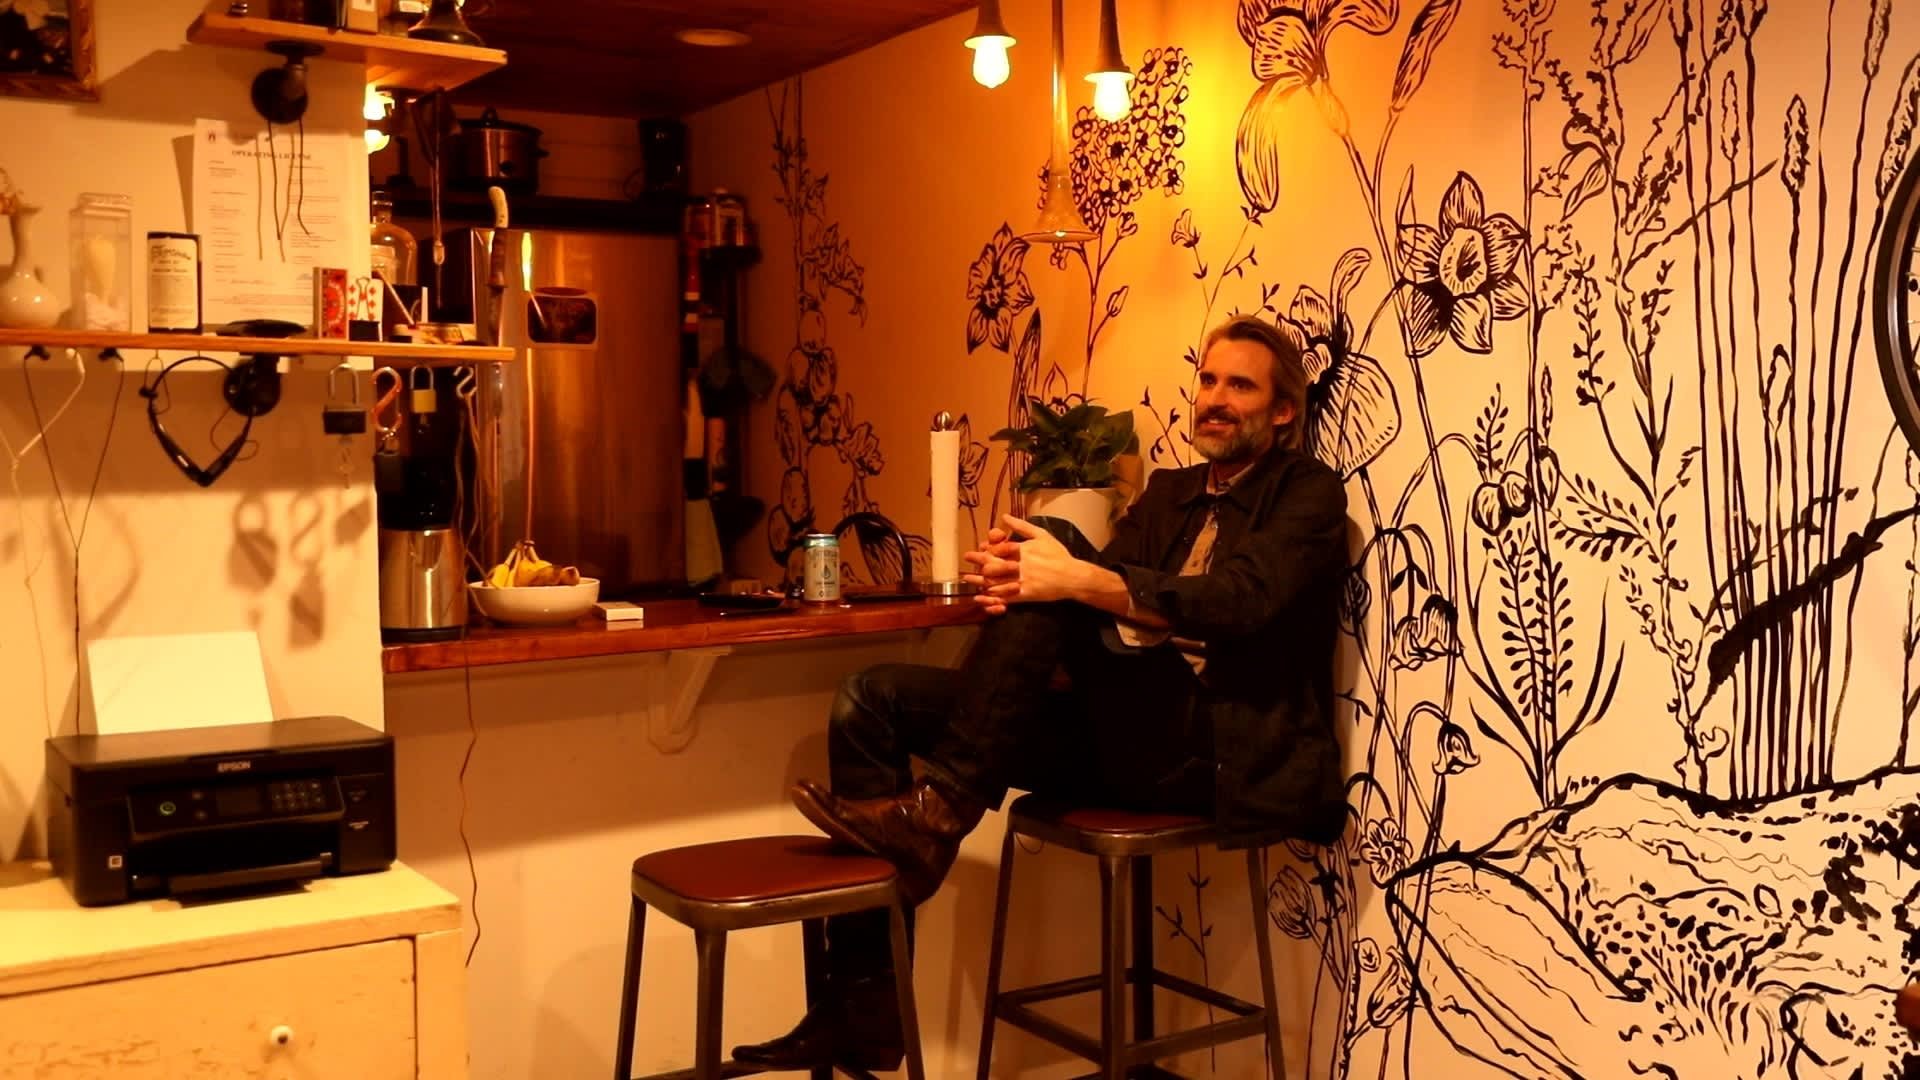 Bryce Dishongh relaxes in his condo.